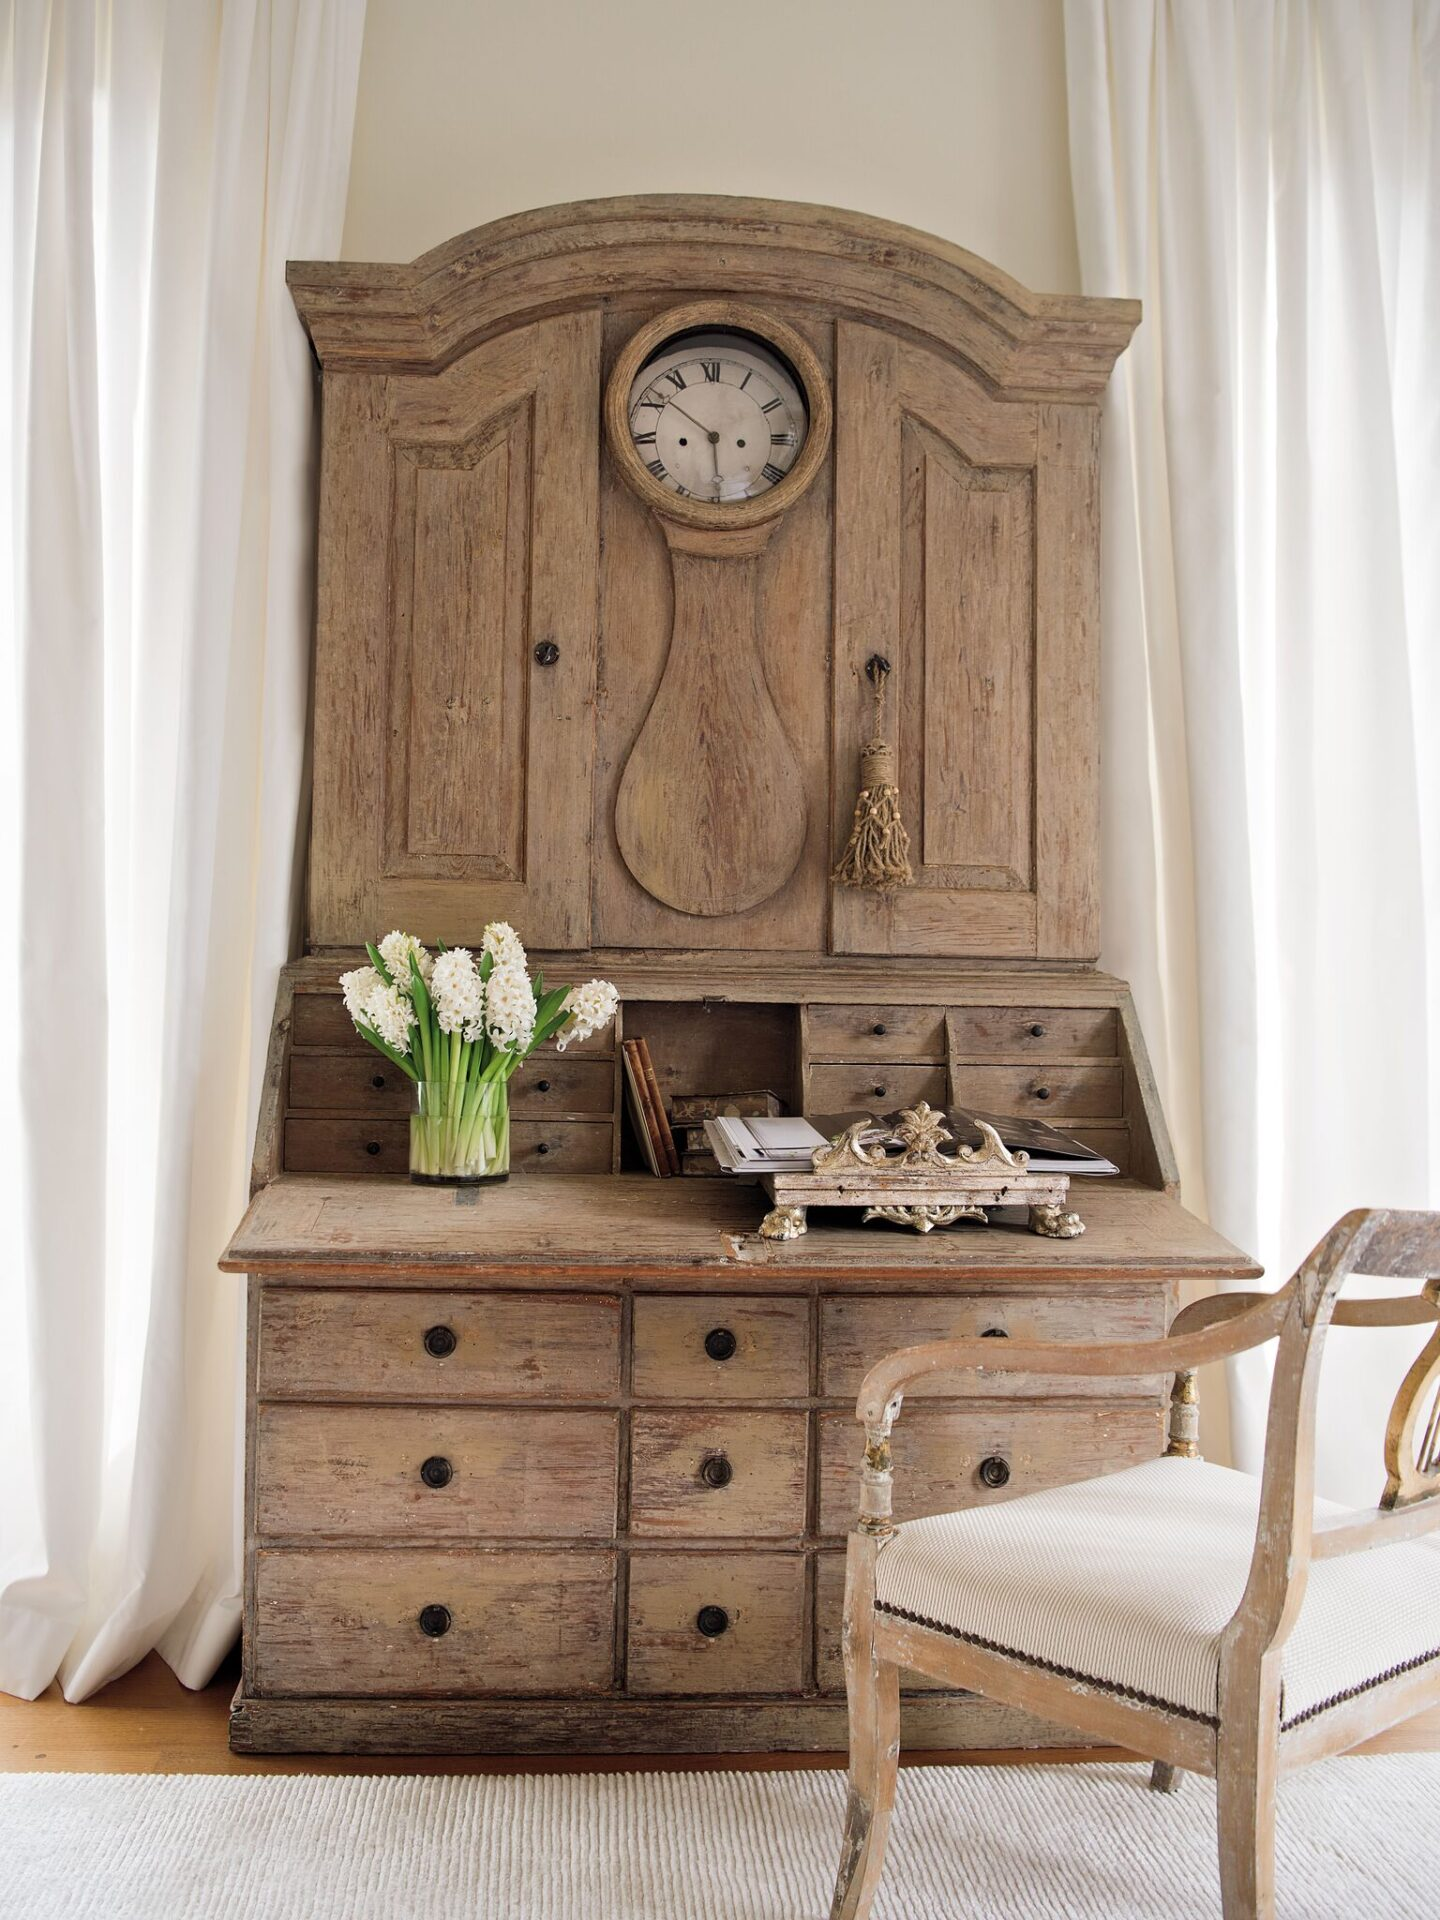 An 18th century clock secretary in a Tara Shaw designed guest room has breathtaking patina and functions for modern life. #tarashaw #swedishantiques #europeanantiques #swedishsecretary #18thcentury #oldworldstyle #elegantdecor